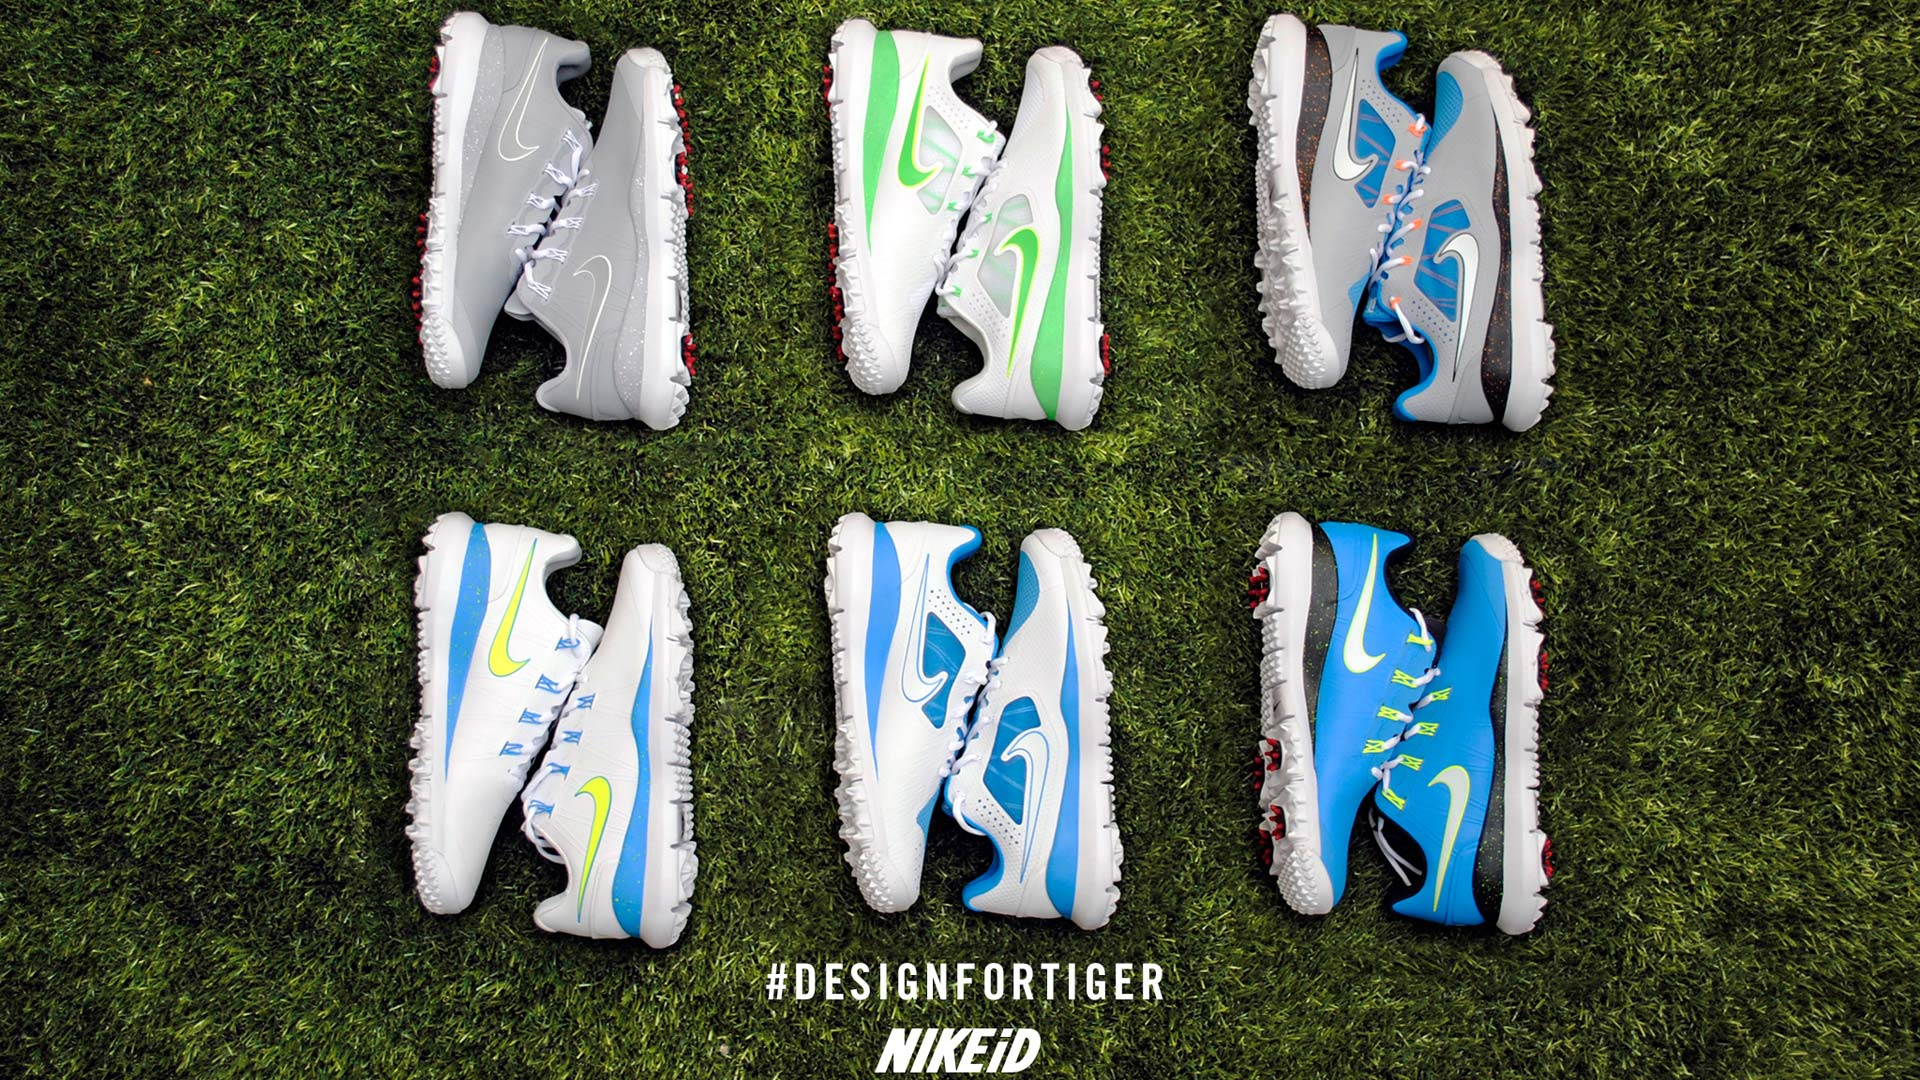 Want to design Tiger Woods' shoes? Now you can